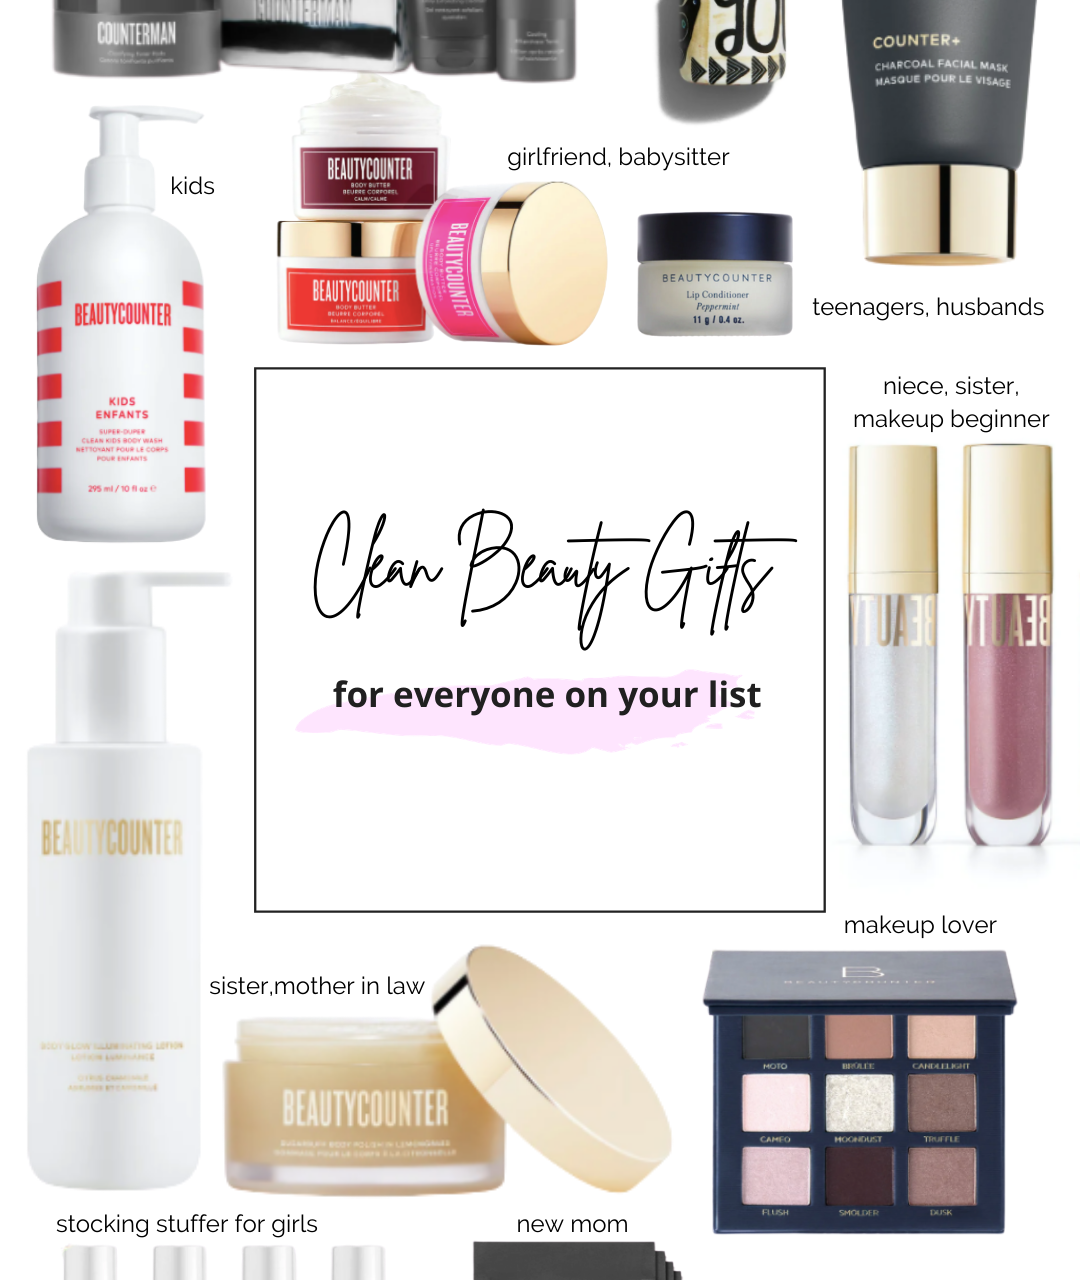 CLEAN BEAUTY GIFTS FOR EVERYONE ON YOUR LIST